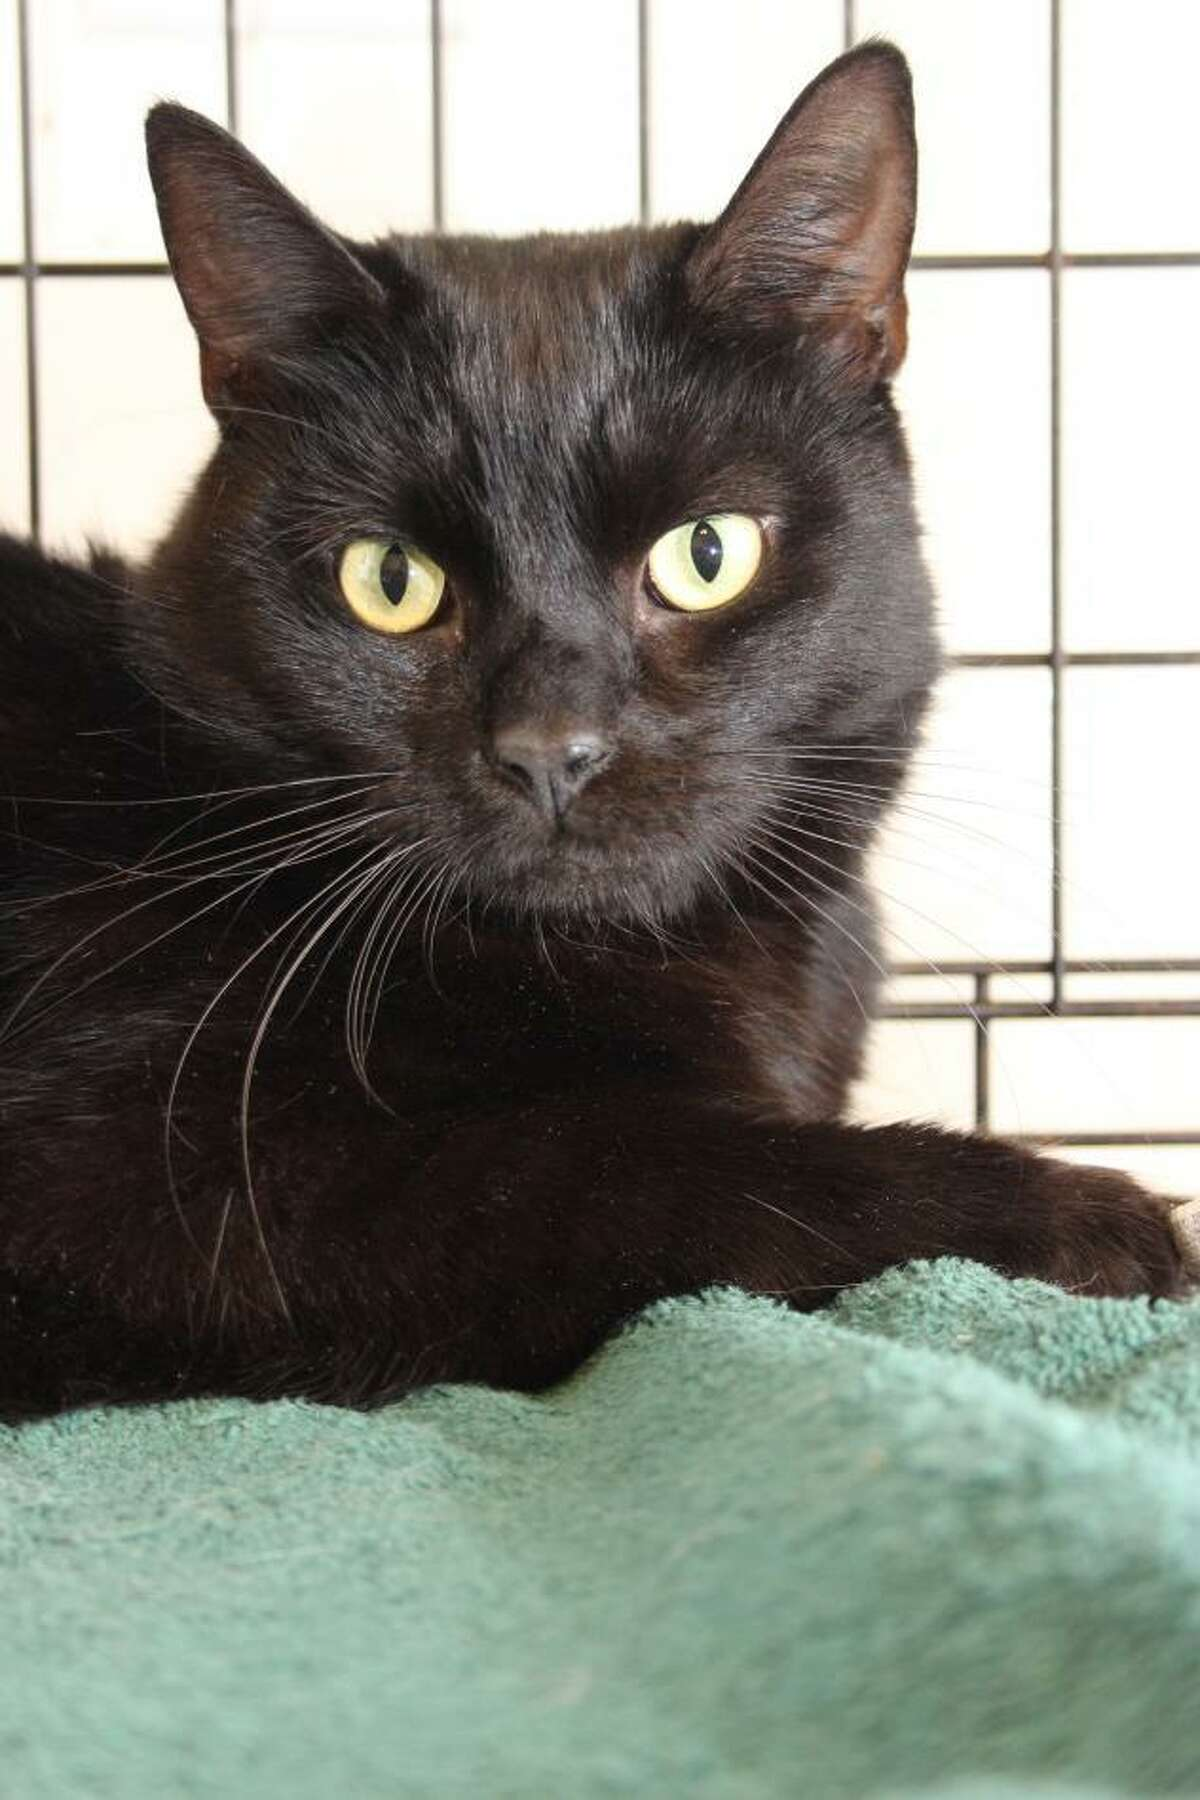 Dublin is extremely sweet, friendly and loving. She's with us now at our adoption center in Granby.